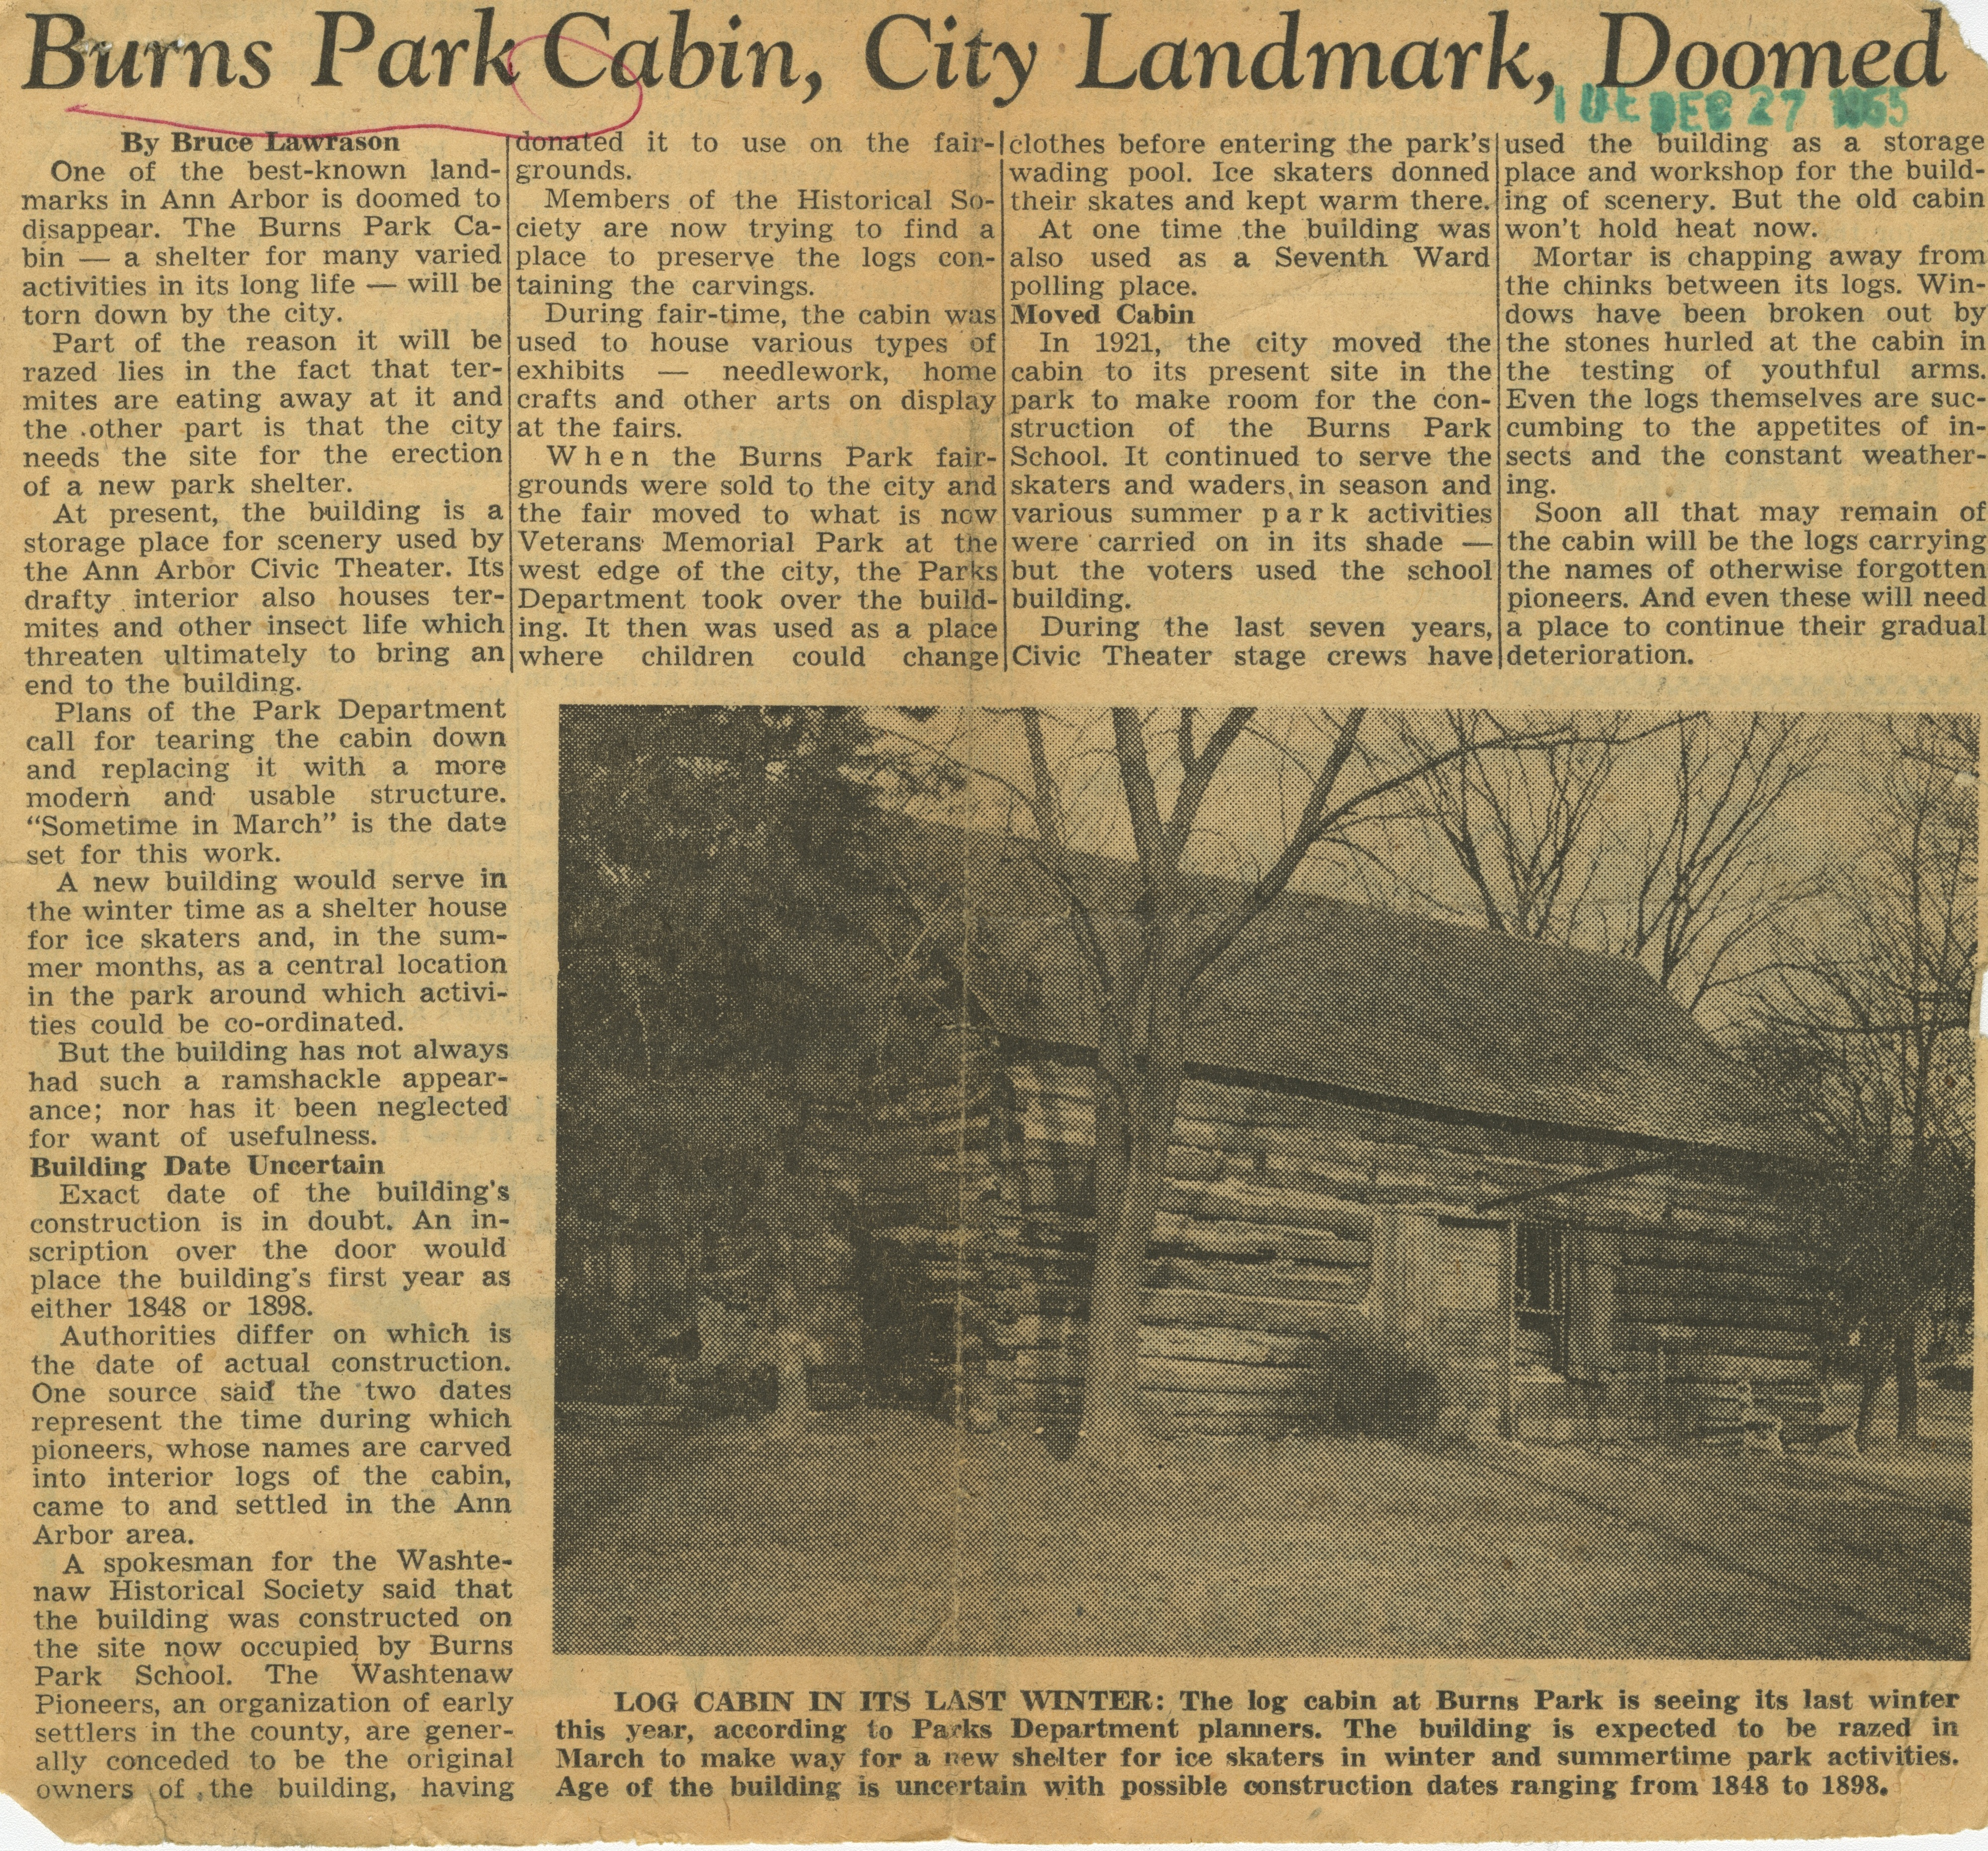 Burns Park Cabin, City Landmark, Doomed image